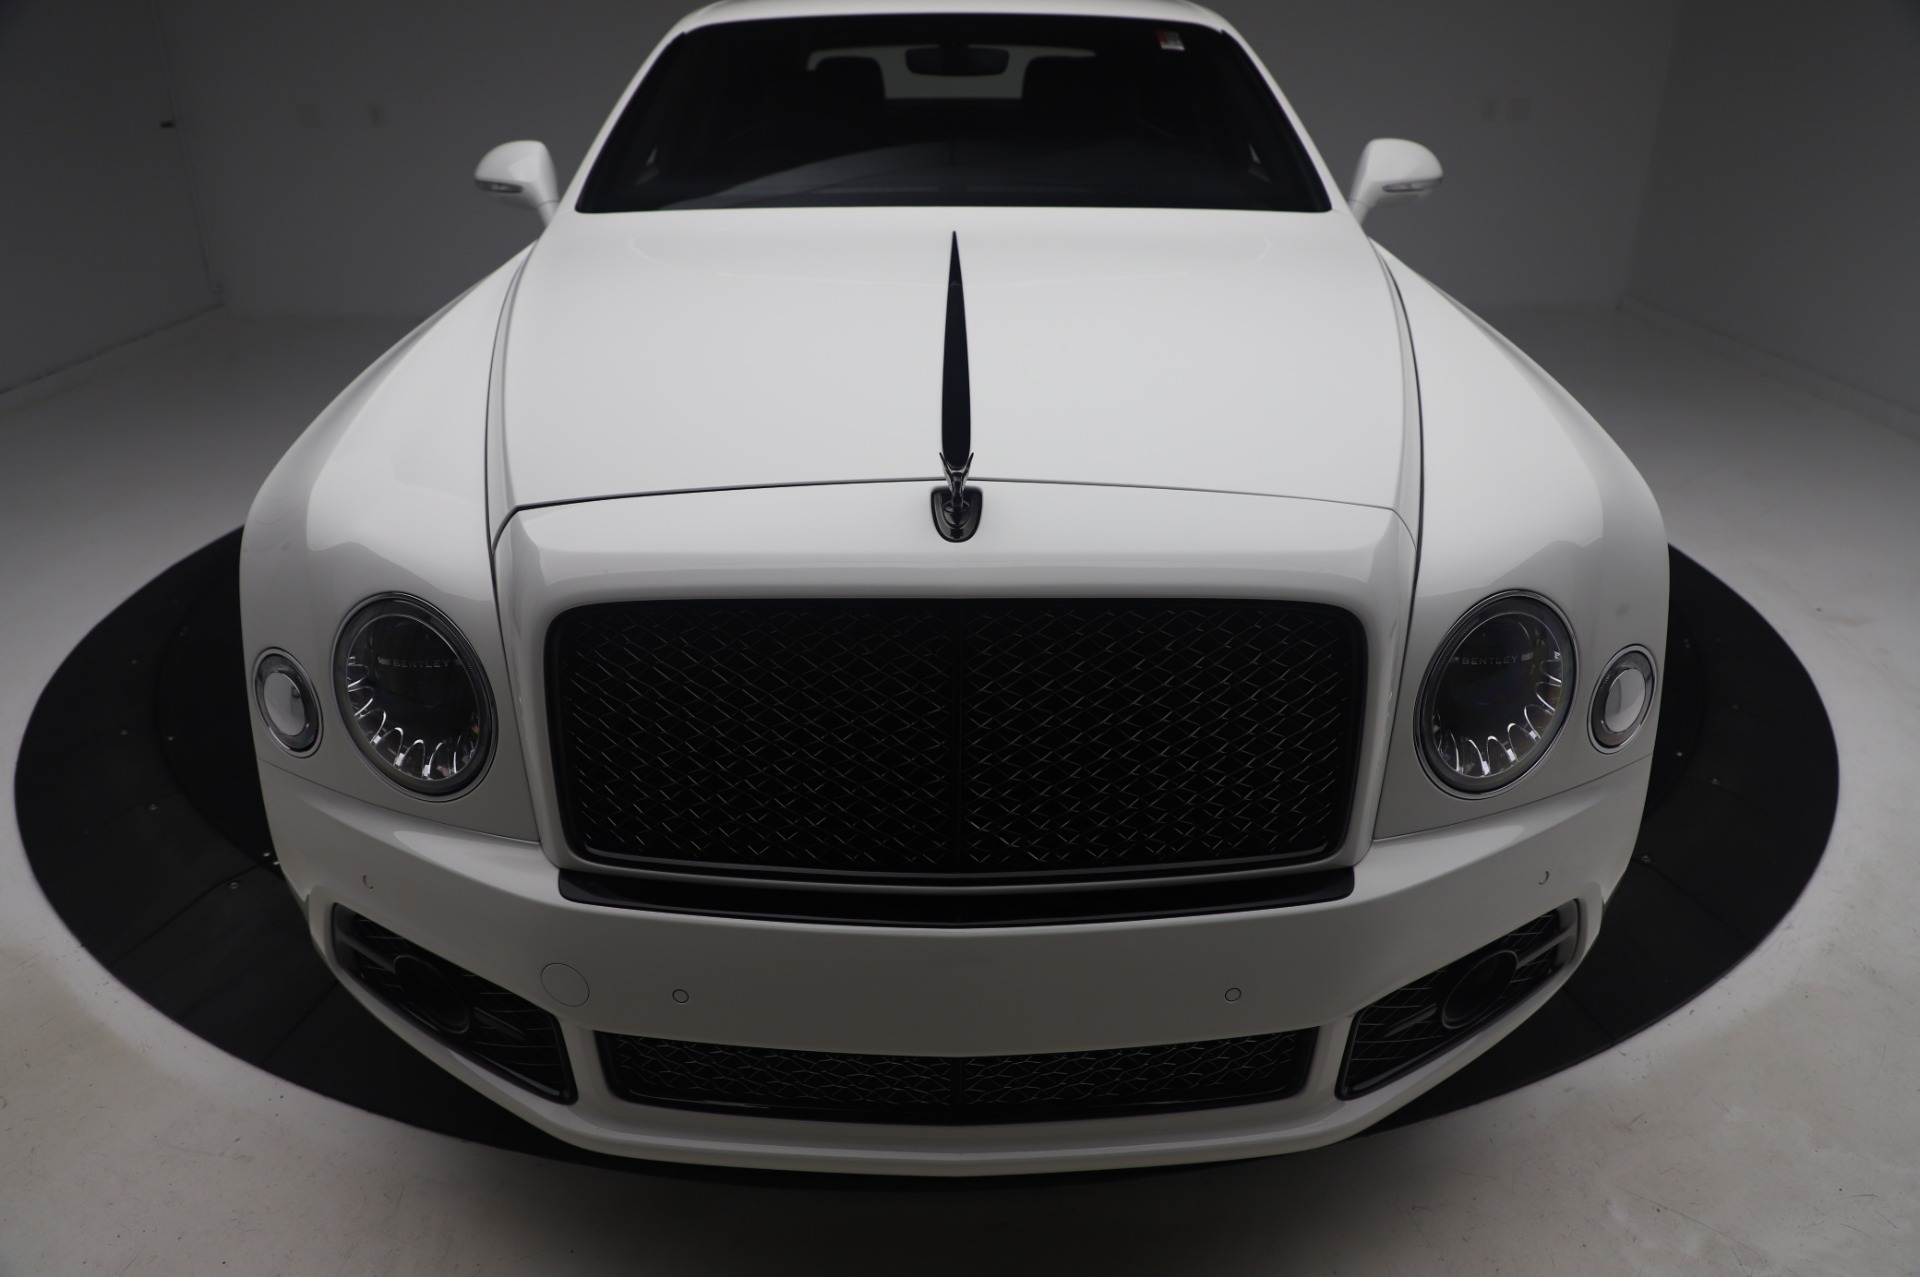 New 2020 Bentley Mulsanne 675 Edition by Mulliner